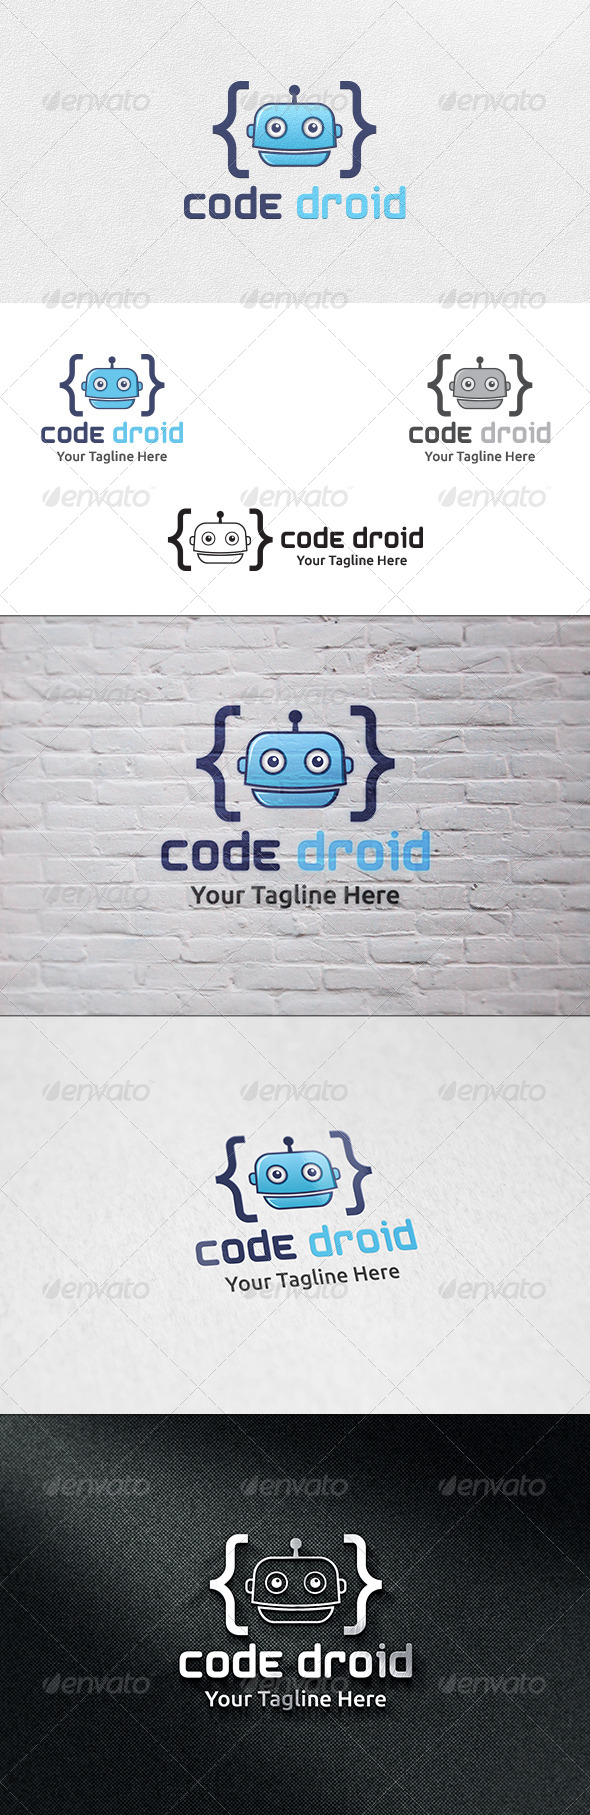 GraphicRiver Code Droid Logo Template 6763890